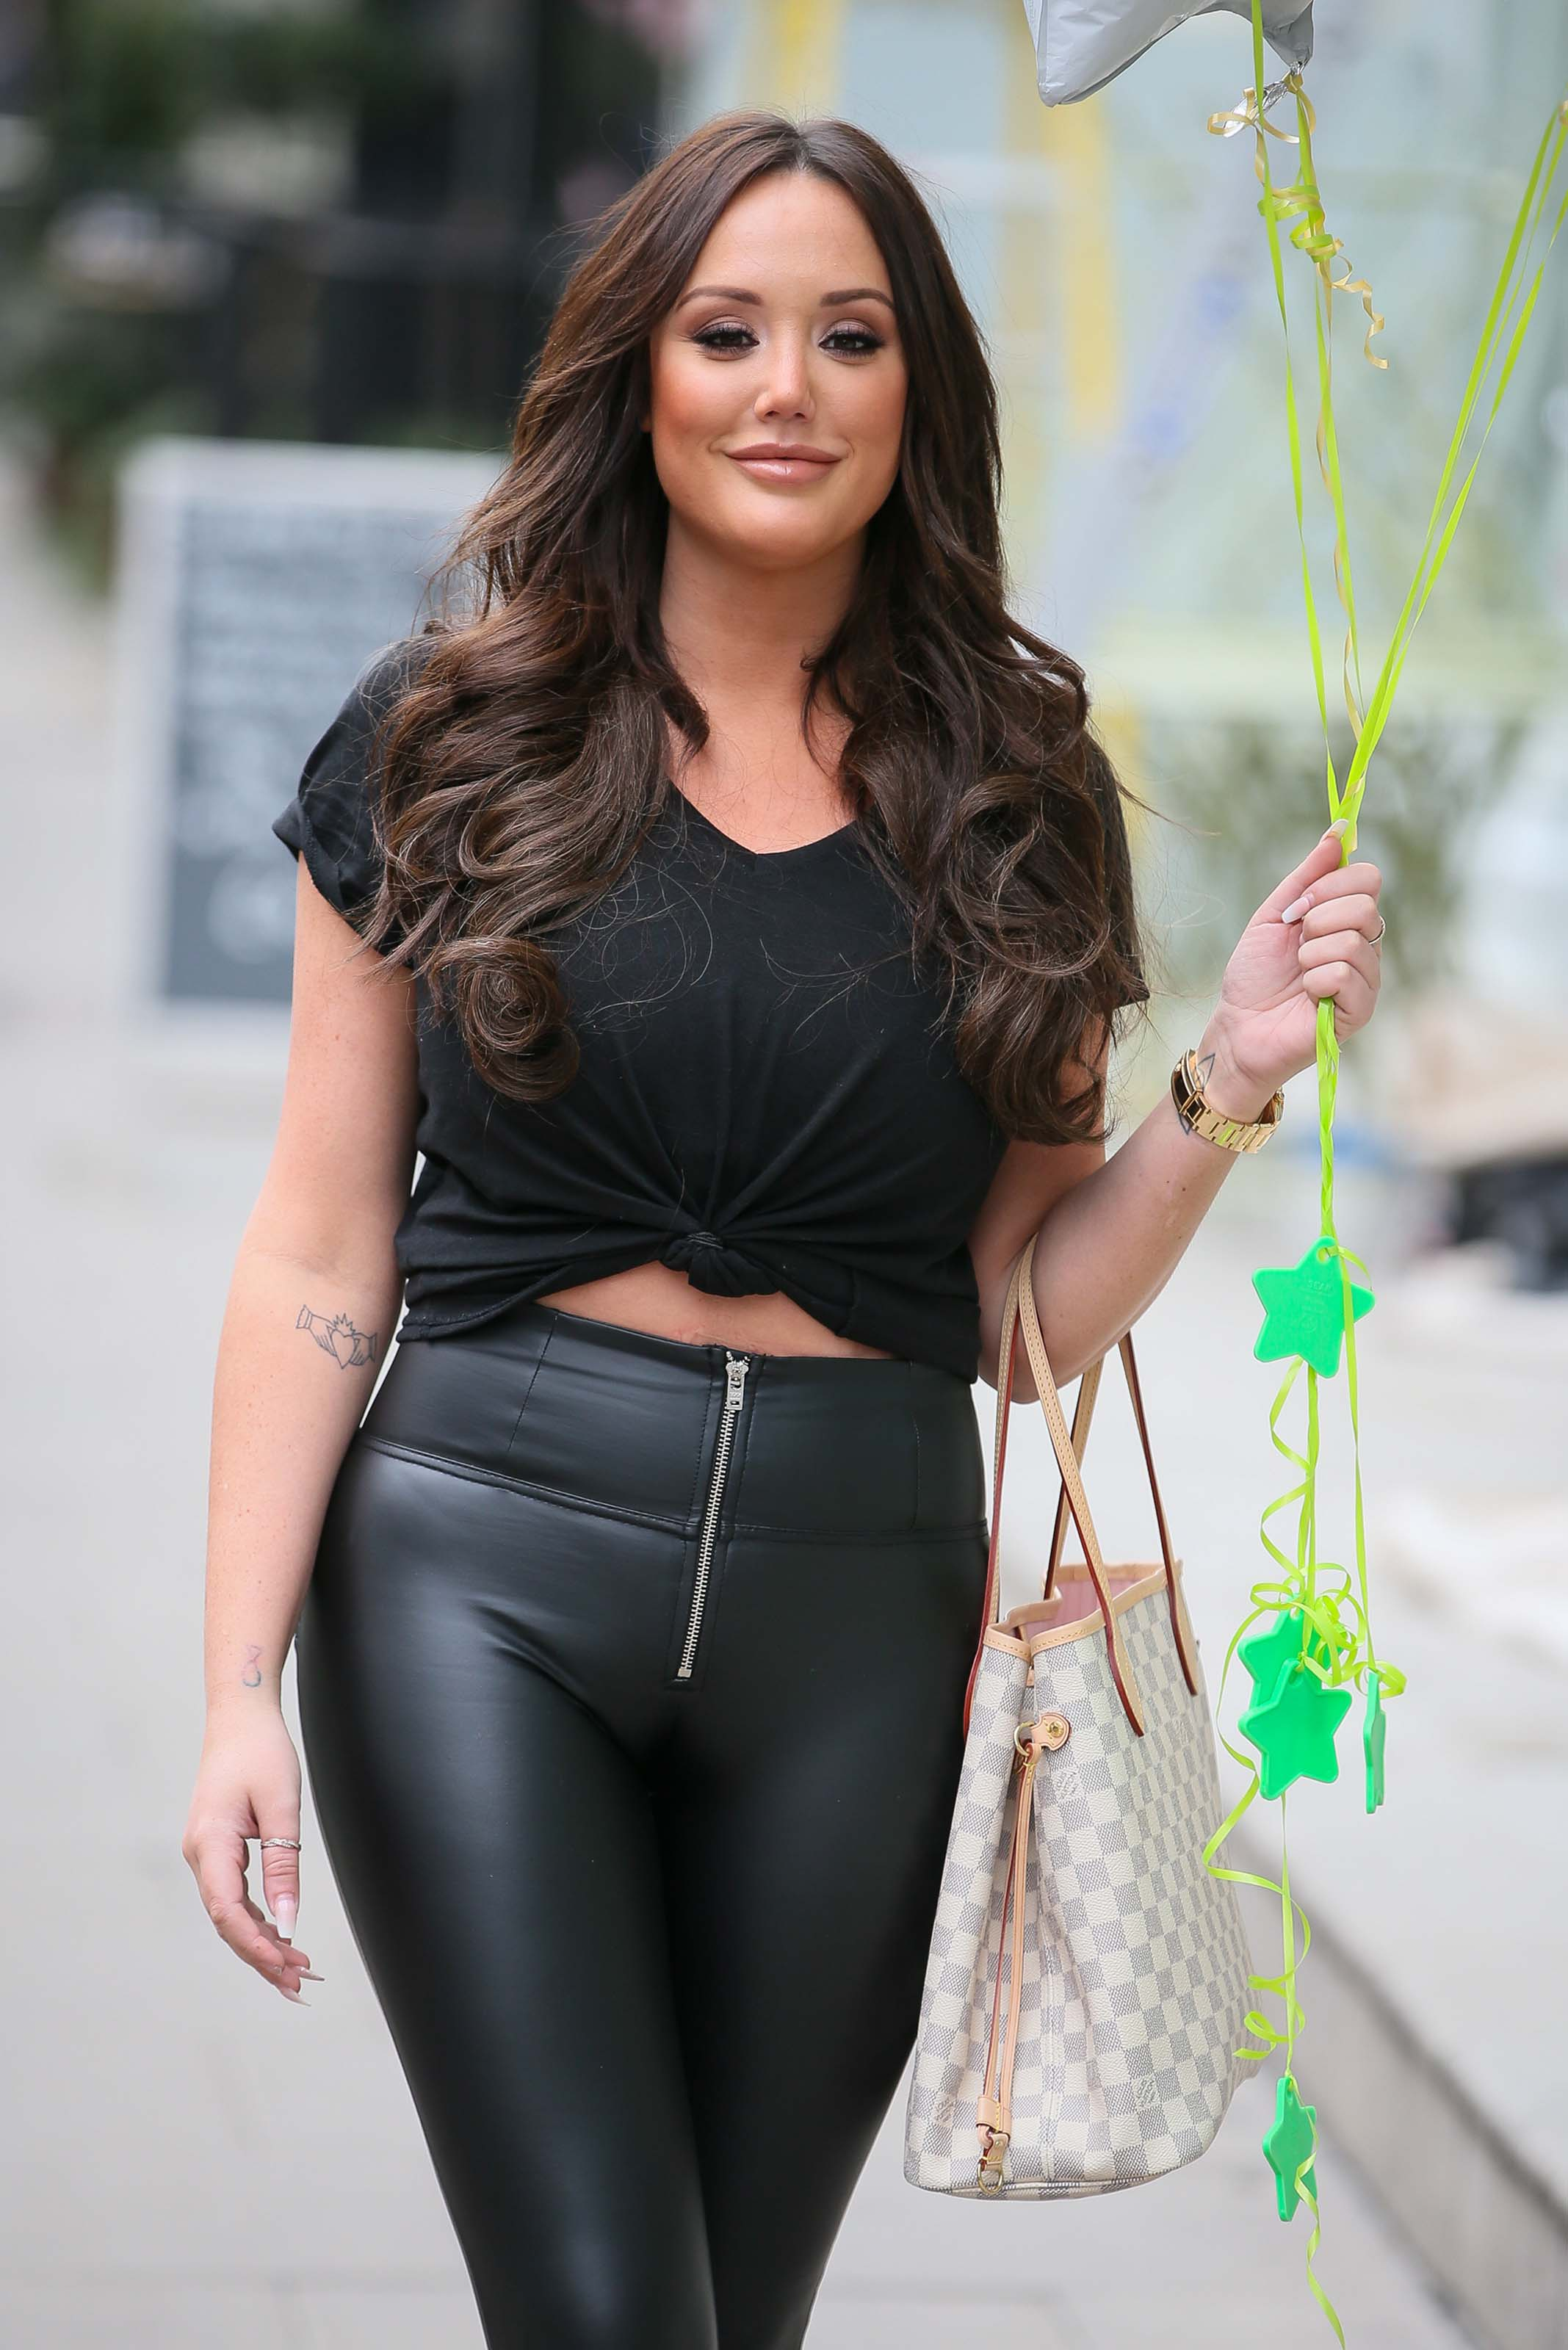 Image Result For Charlotte Crosby